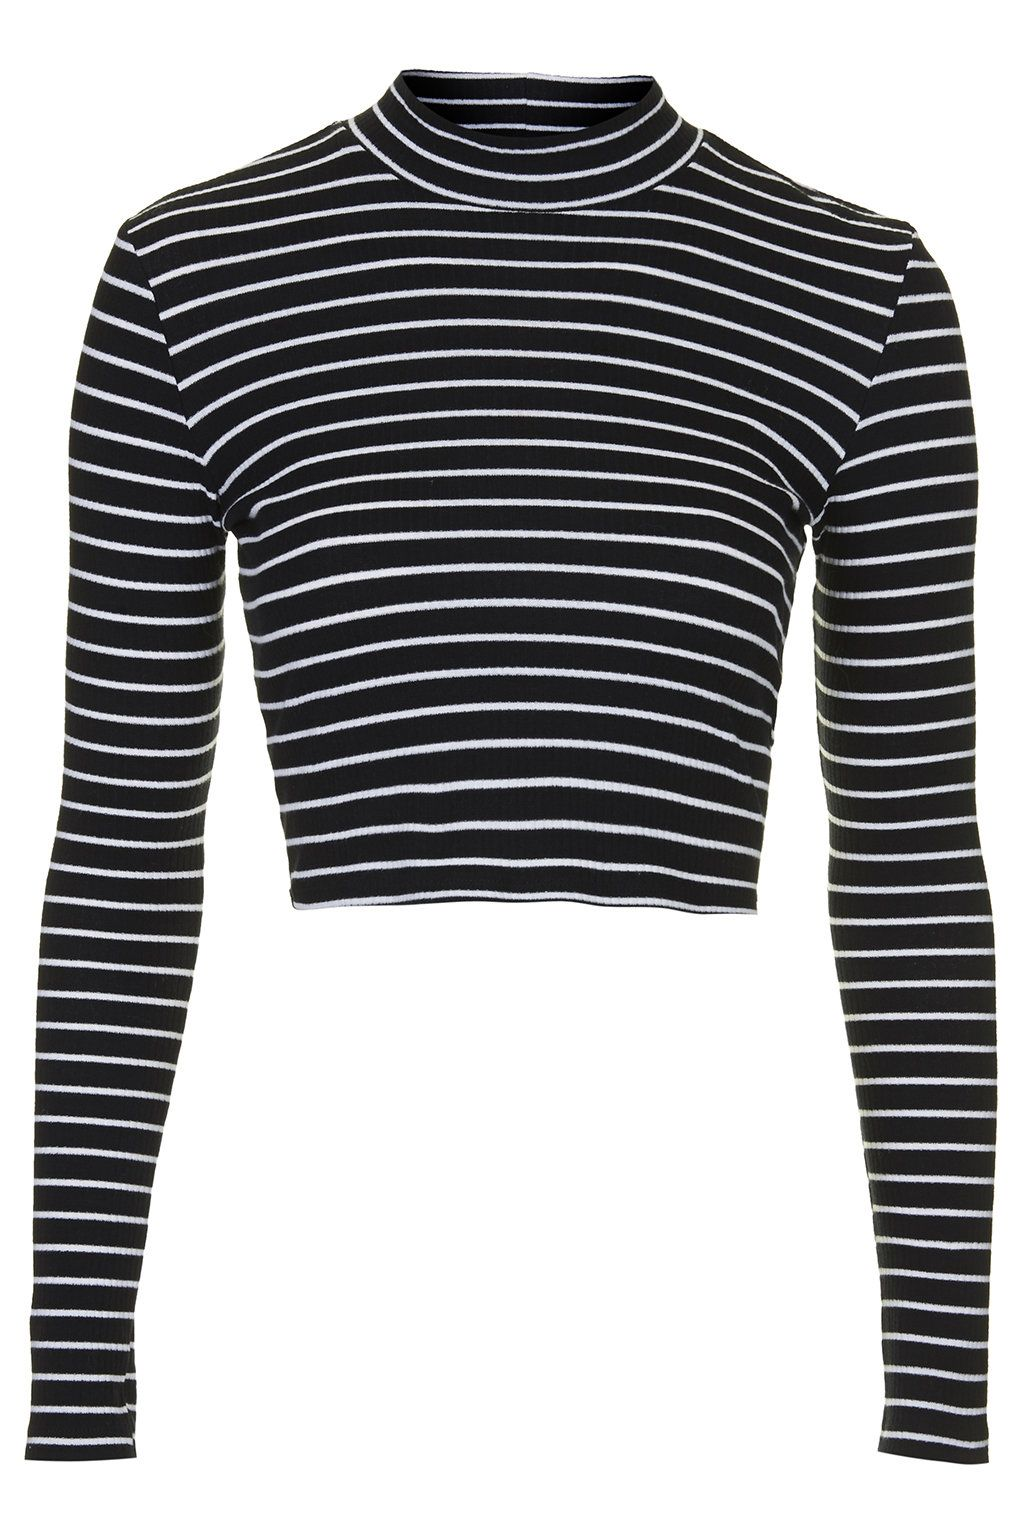 f3d205b8 product img Navy Blue Shirts, Navy Blue Crop Top, Striped Crop Top, Striped